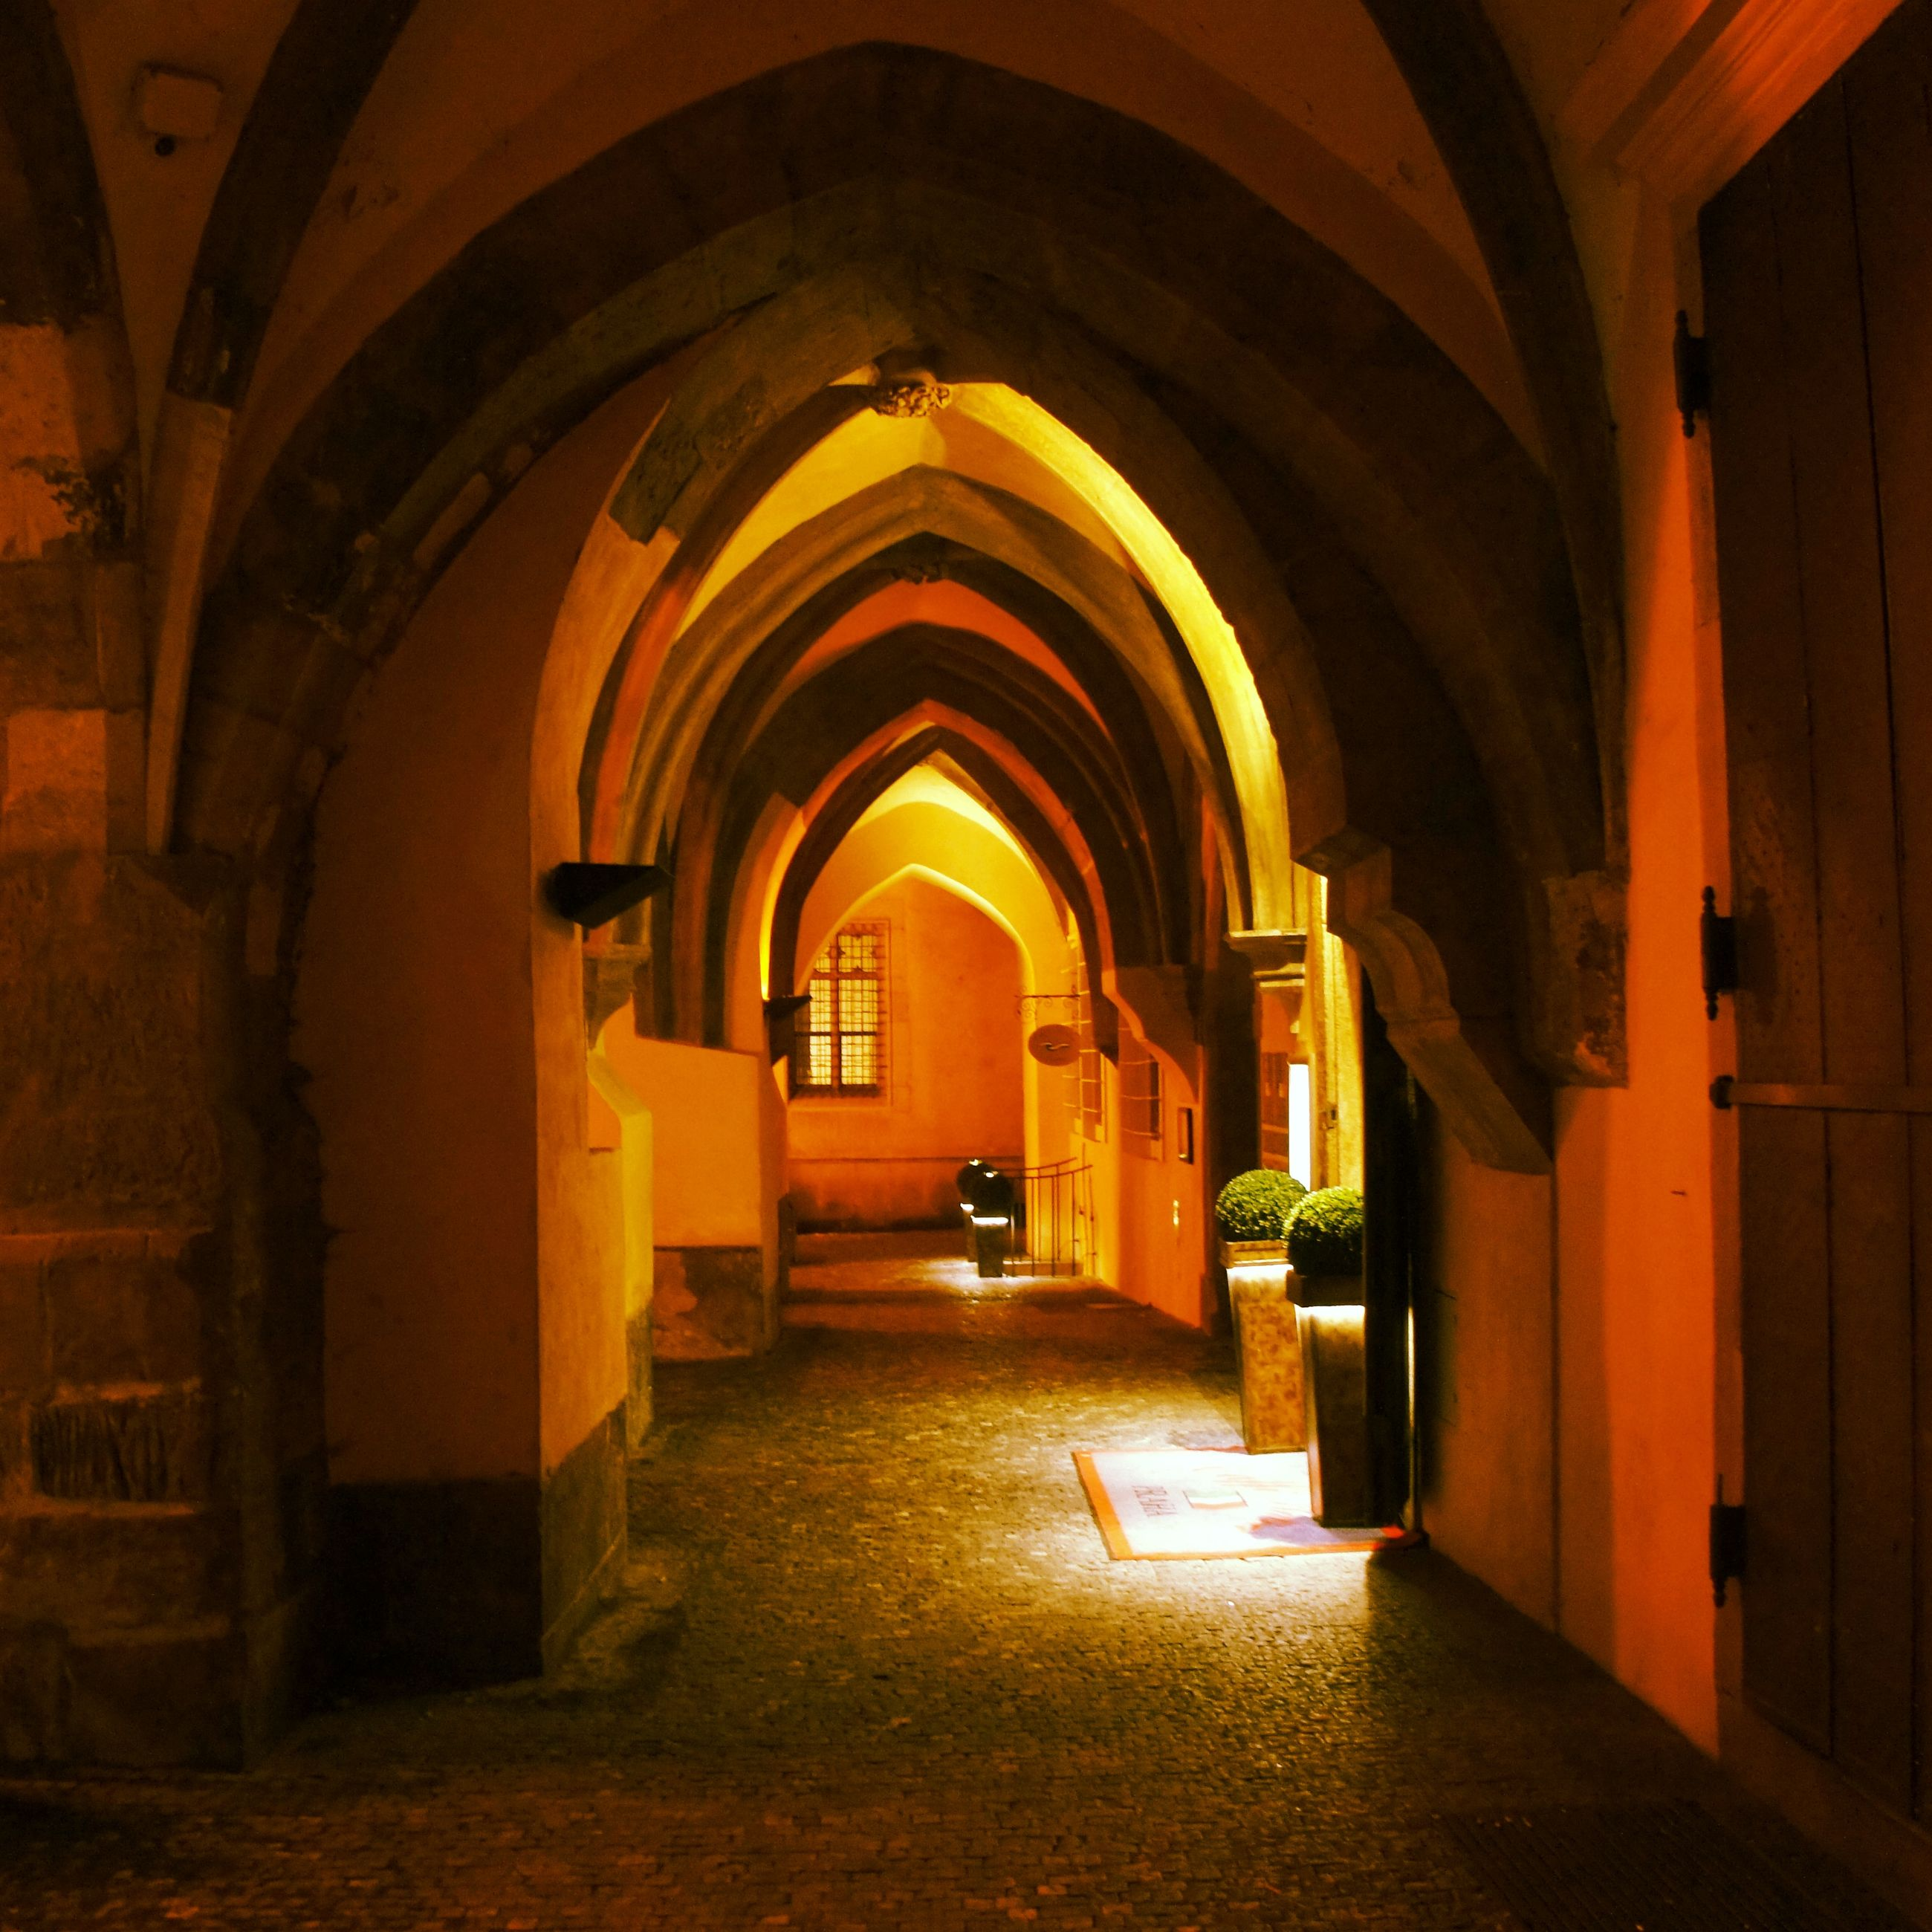 arch, architecture, indoors, built structure, religion, place of worship, the way forward, spirituality, illuminated, corridor, church, archway, entrance, history, building exterior, architectural column, pew, empty